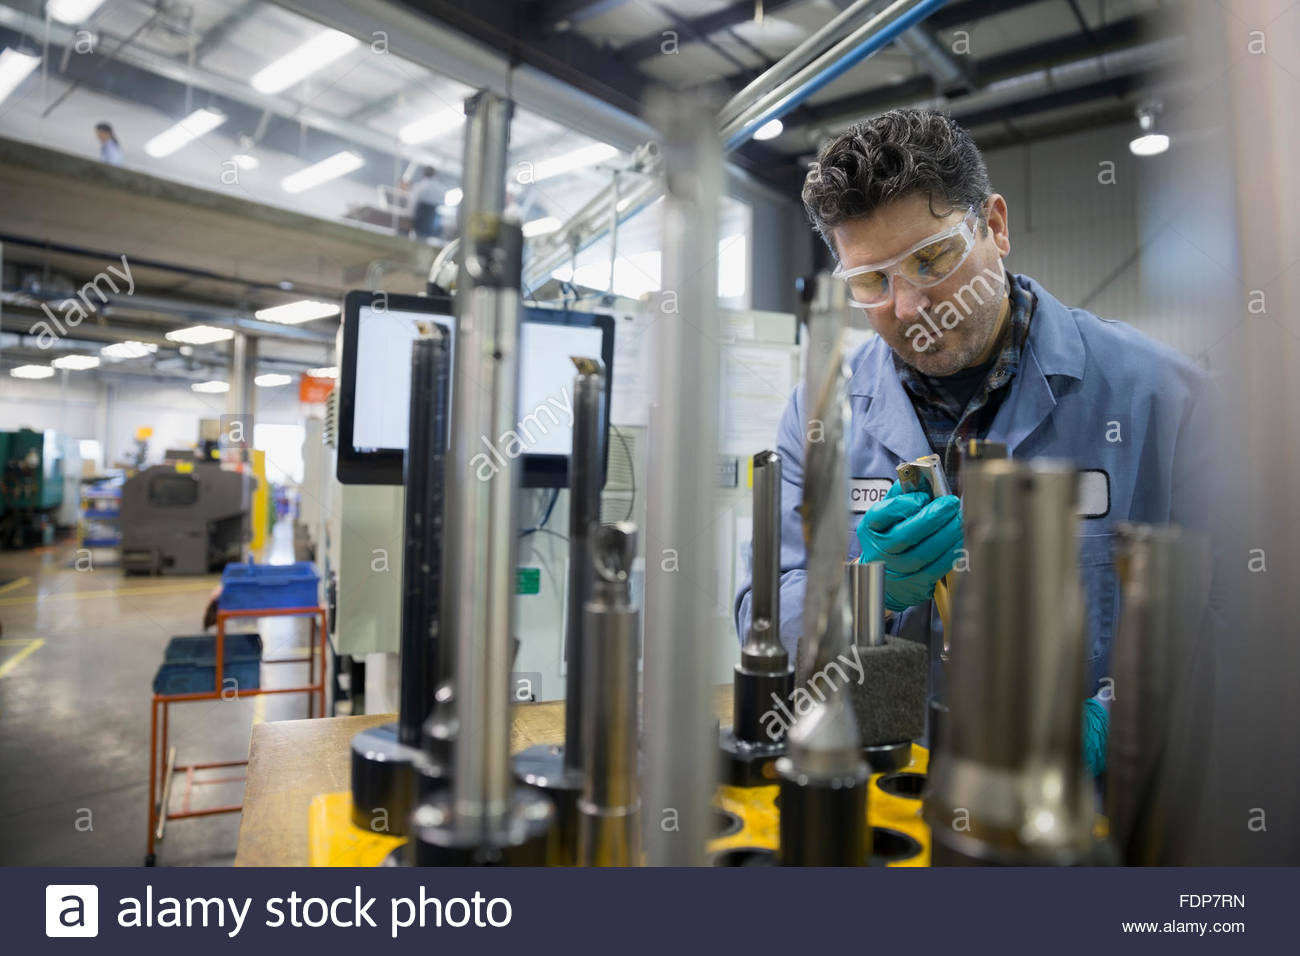 Worker examining machine part in factory - Stock Image